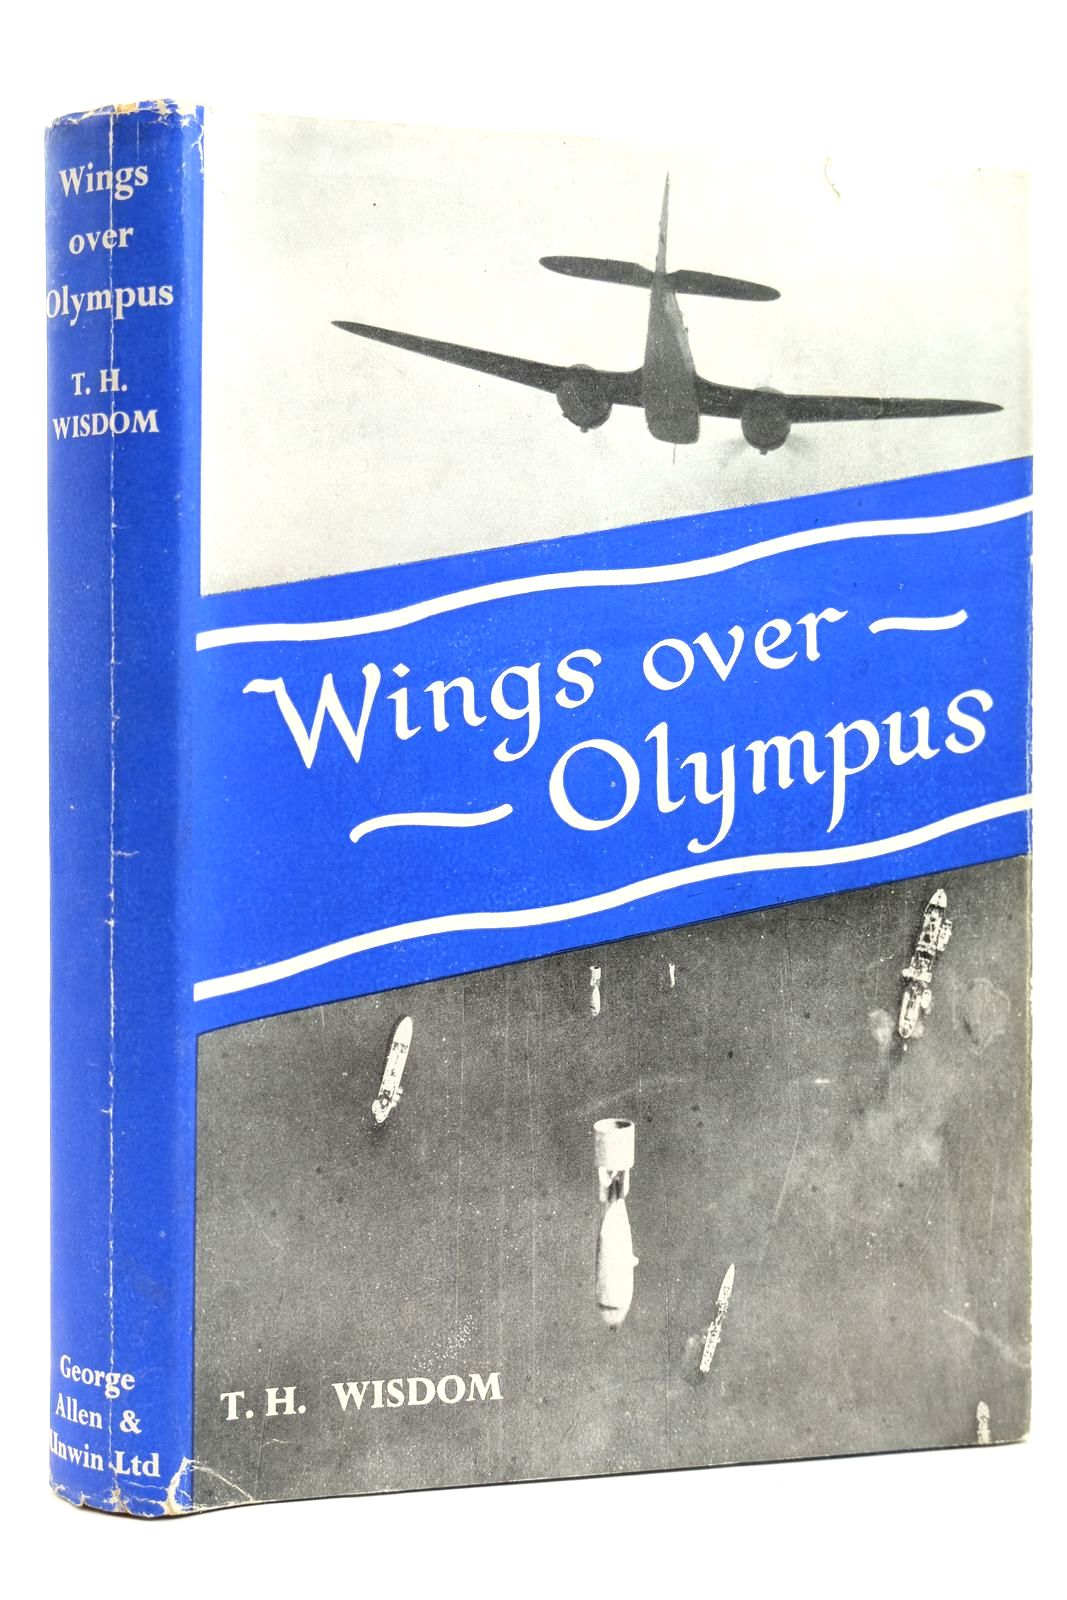 Photo of WINGS OVER OLYMPUS written by Wisdom, T.H. published by George Allen & Unwin Ltd. (STOCK CODE: 2131886)  for sale by Stella & Rose's Books